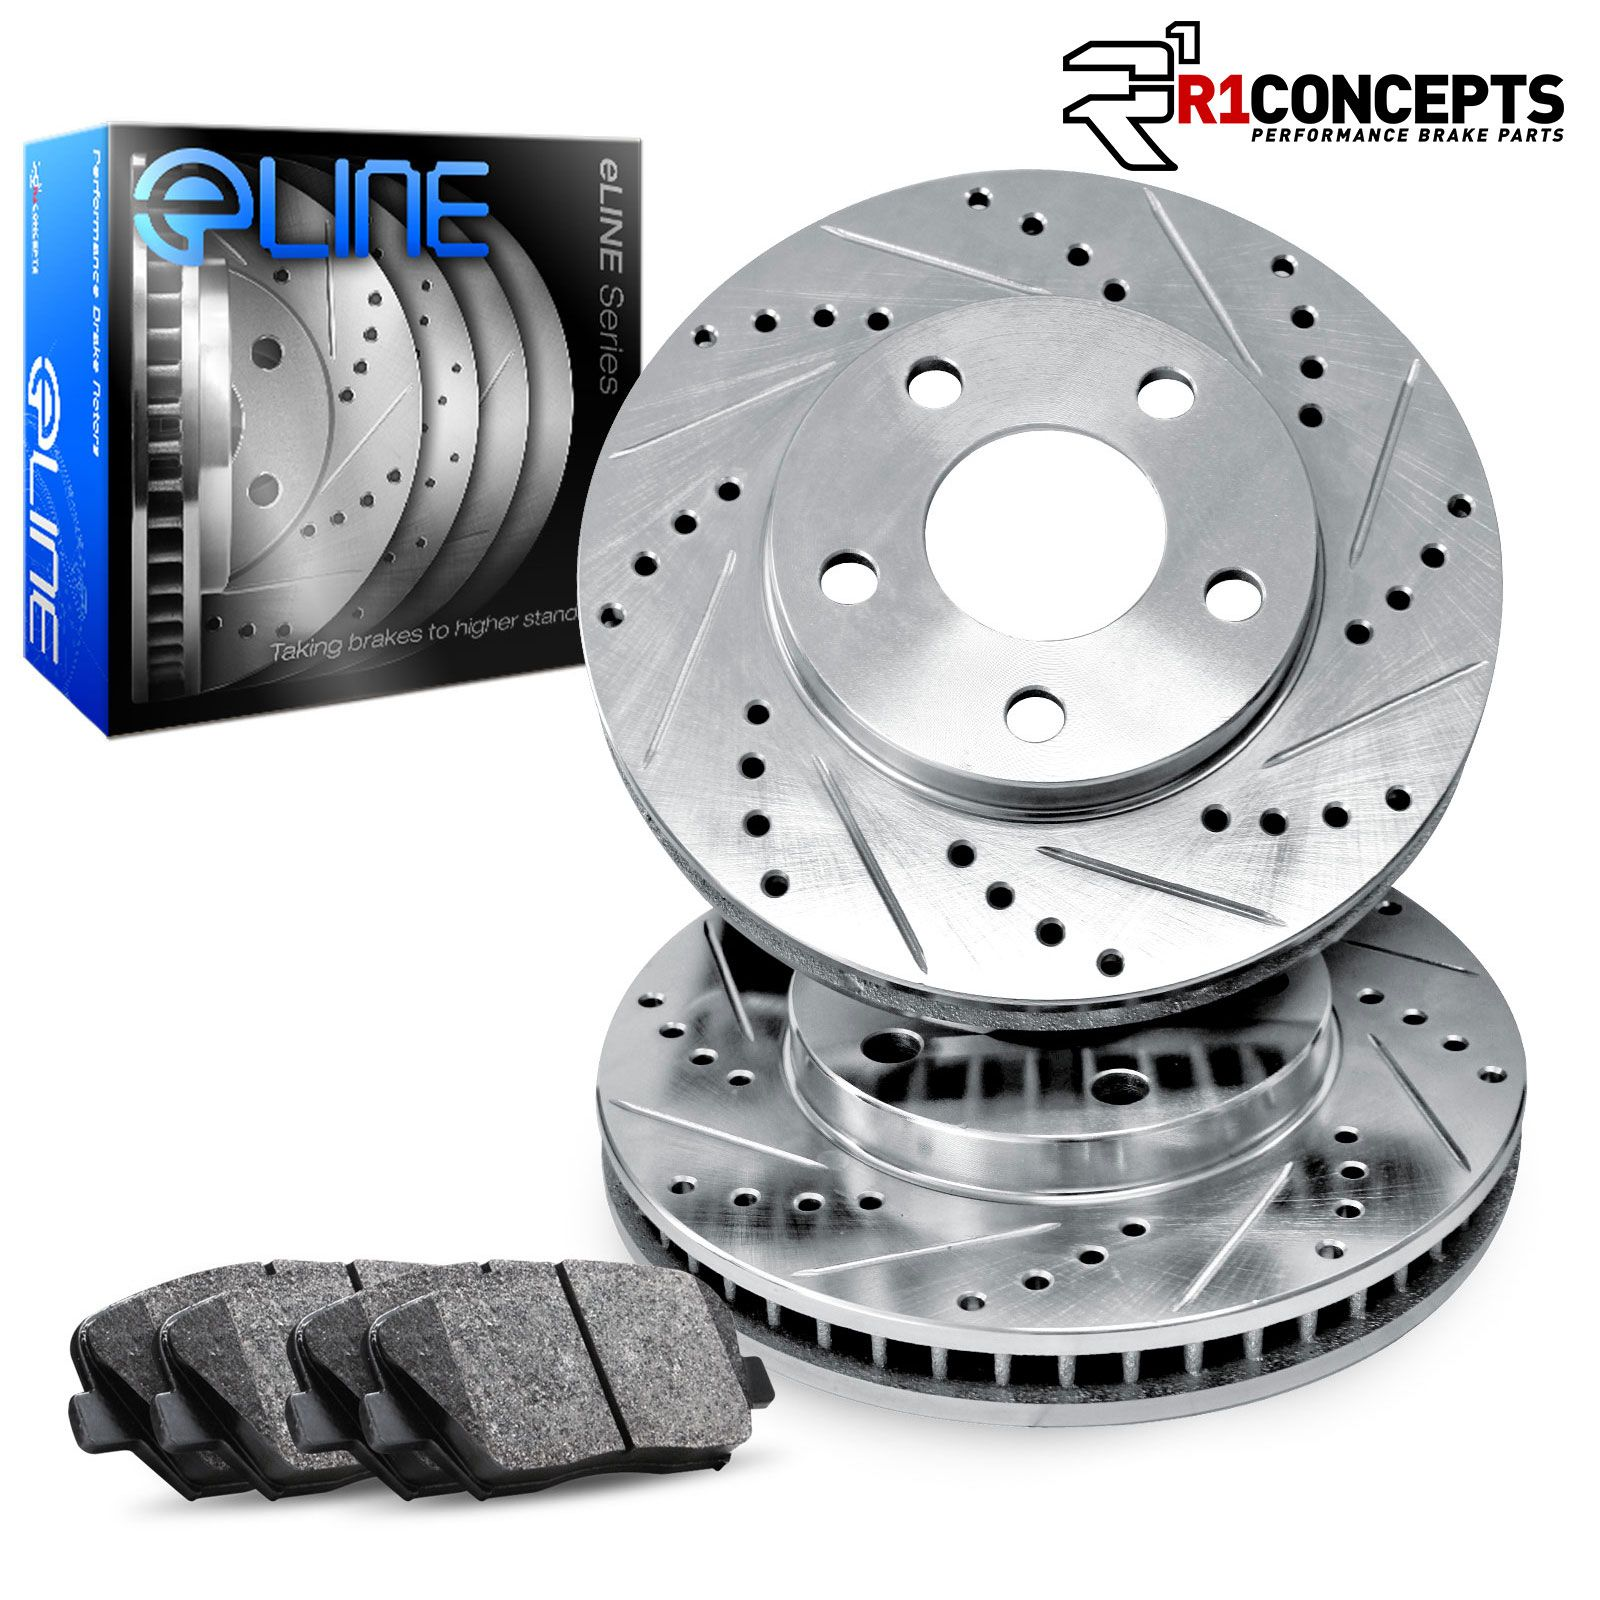 Honda Accord LXi SEi 88 89 Brake Disc Rotors FRONT